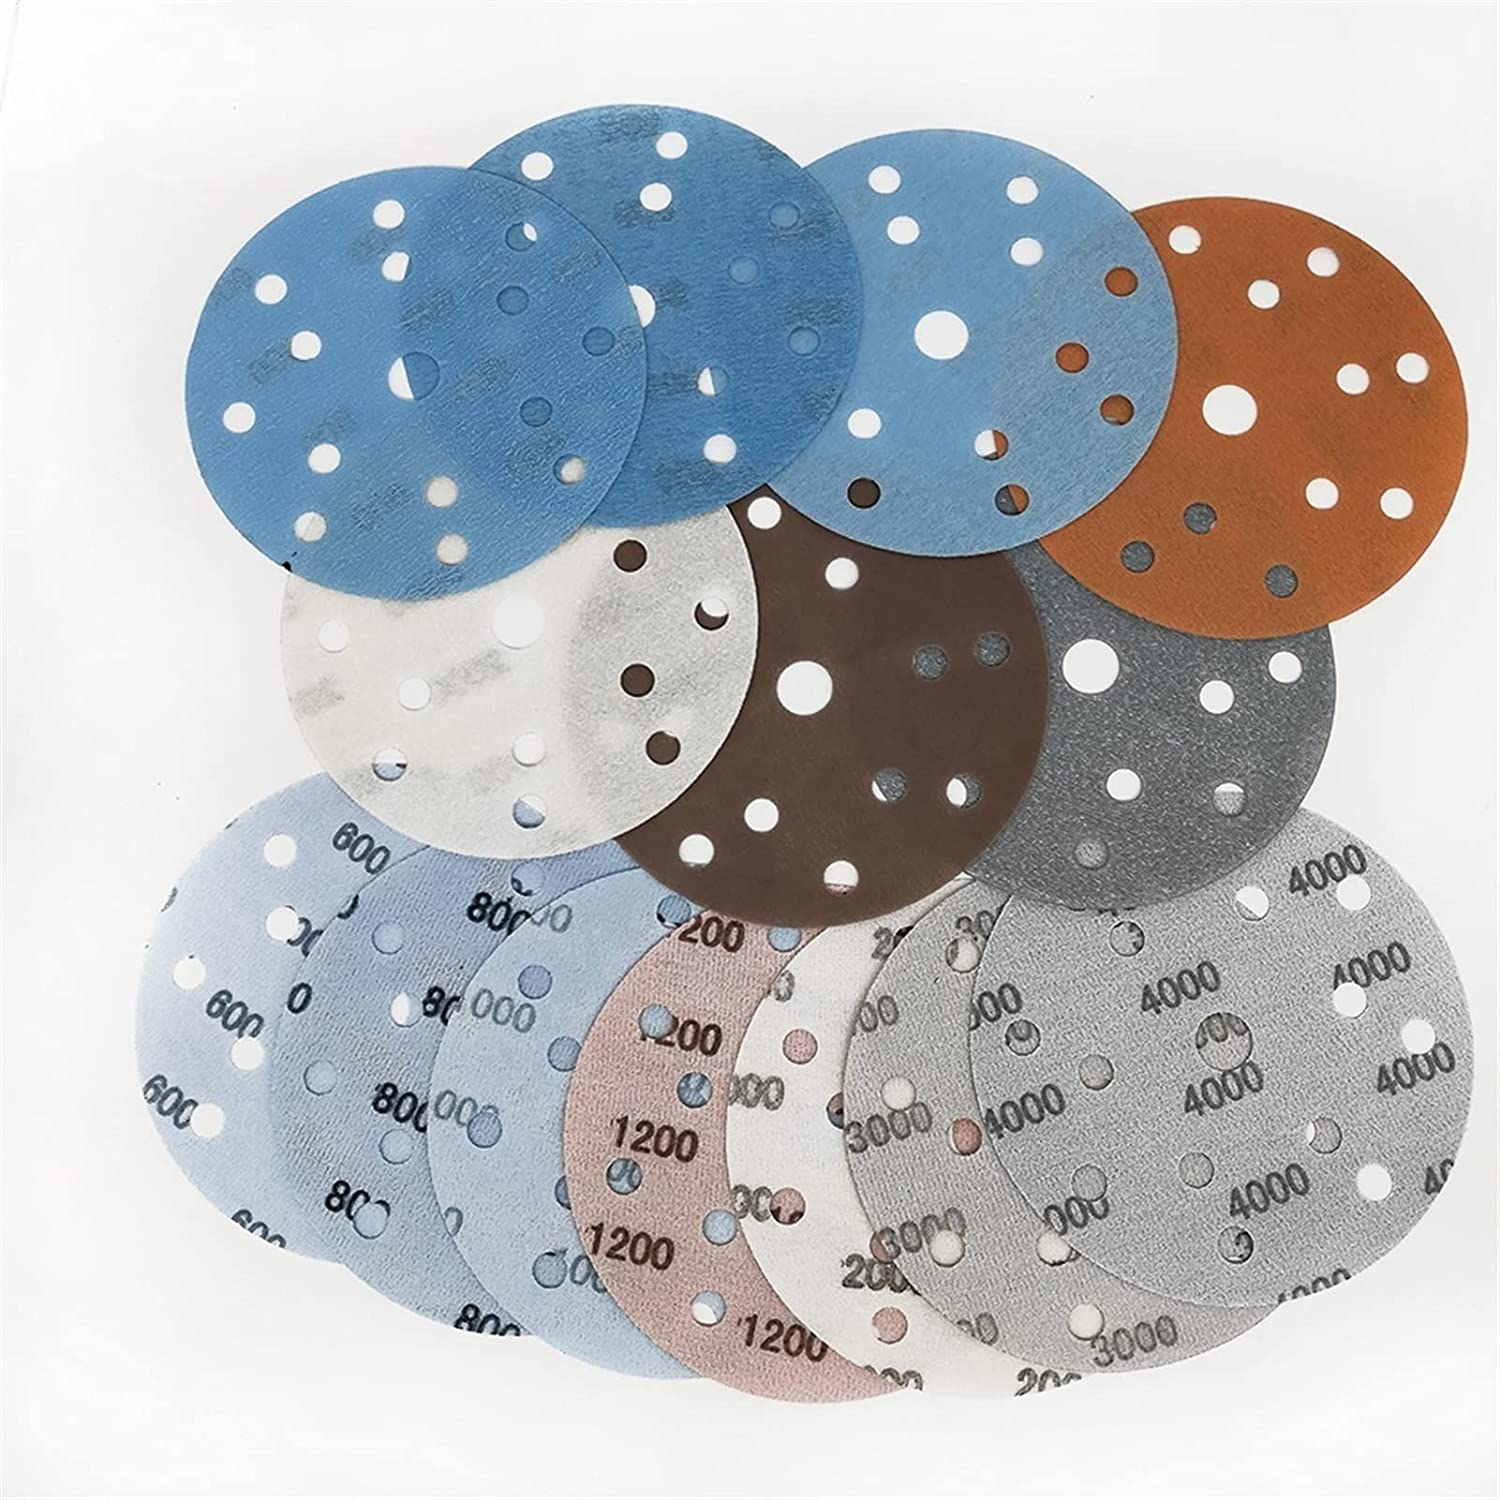 10PCS Now free shipping 6Inch 15 Holes New popularity Superfine Sanding Disc Soft Waterproof Film